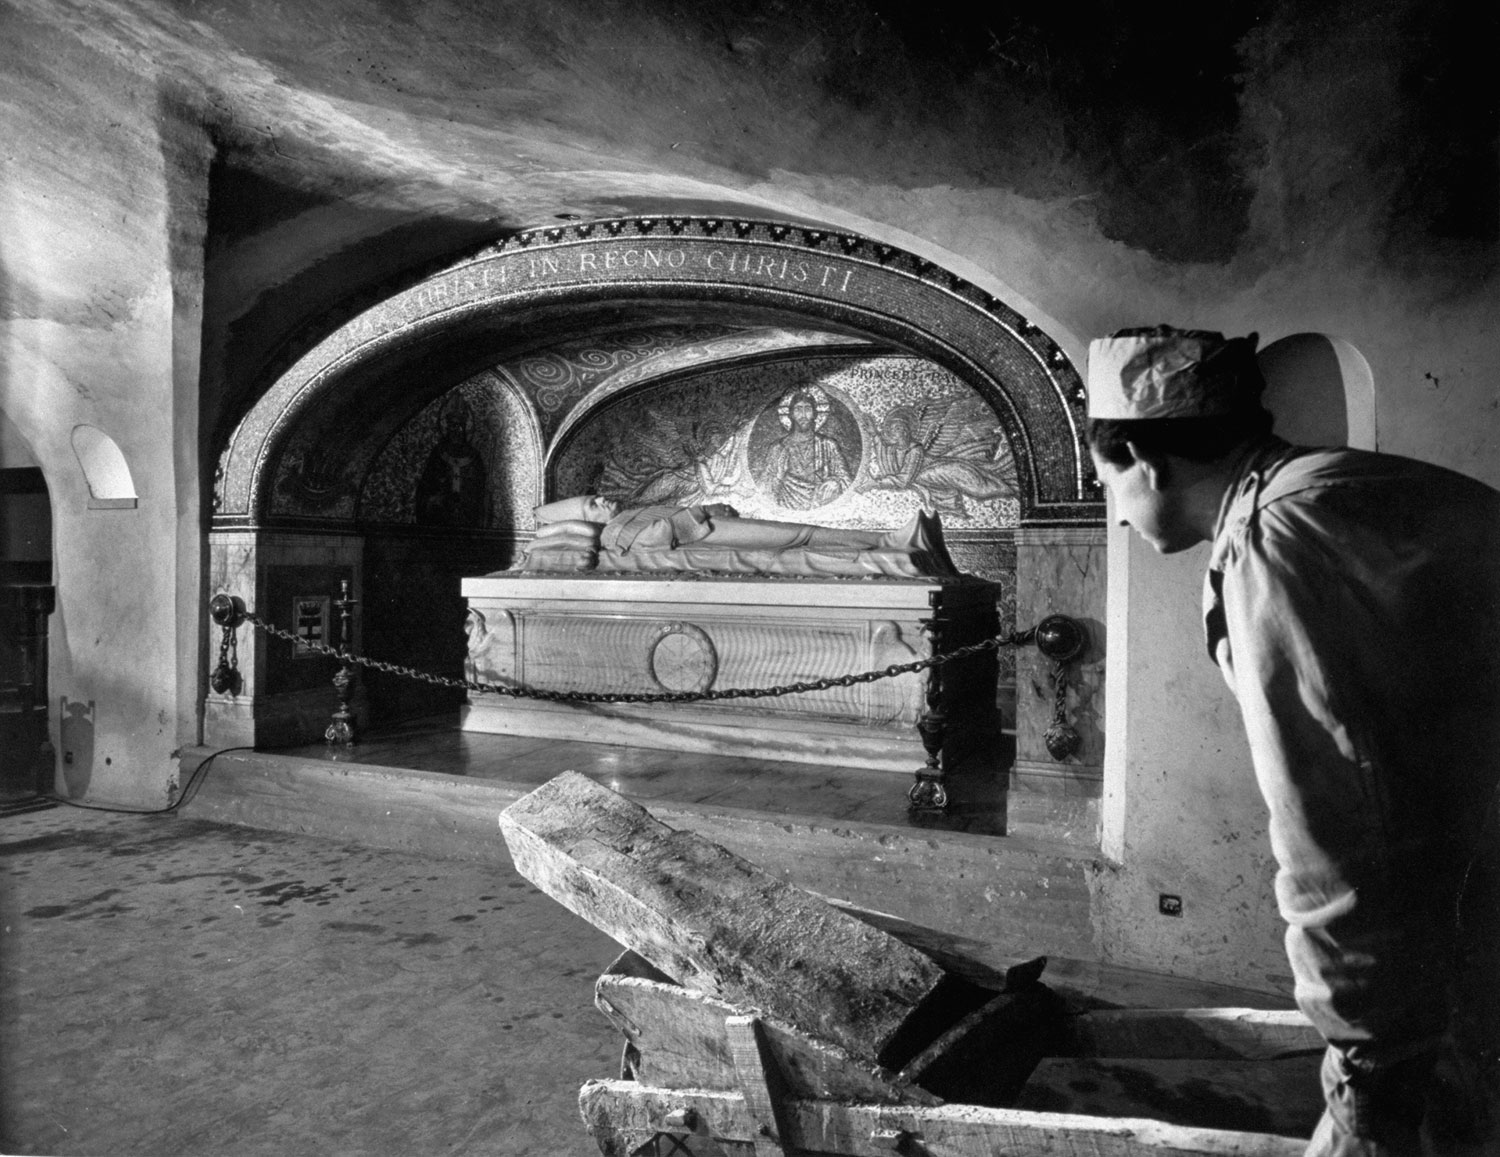 Pope Pius XI, whose desire to be buried below St. Peter's nave led to the historic excavations, lies in his stone sarcophagus in renovated upper grottoes.